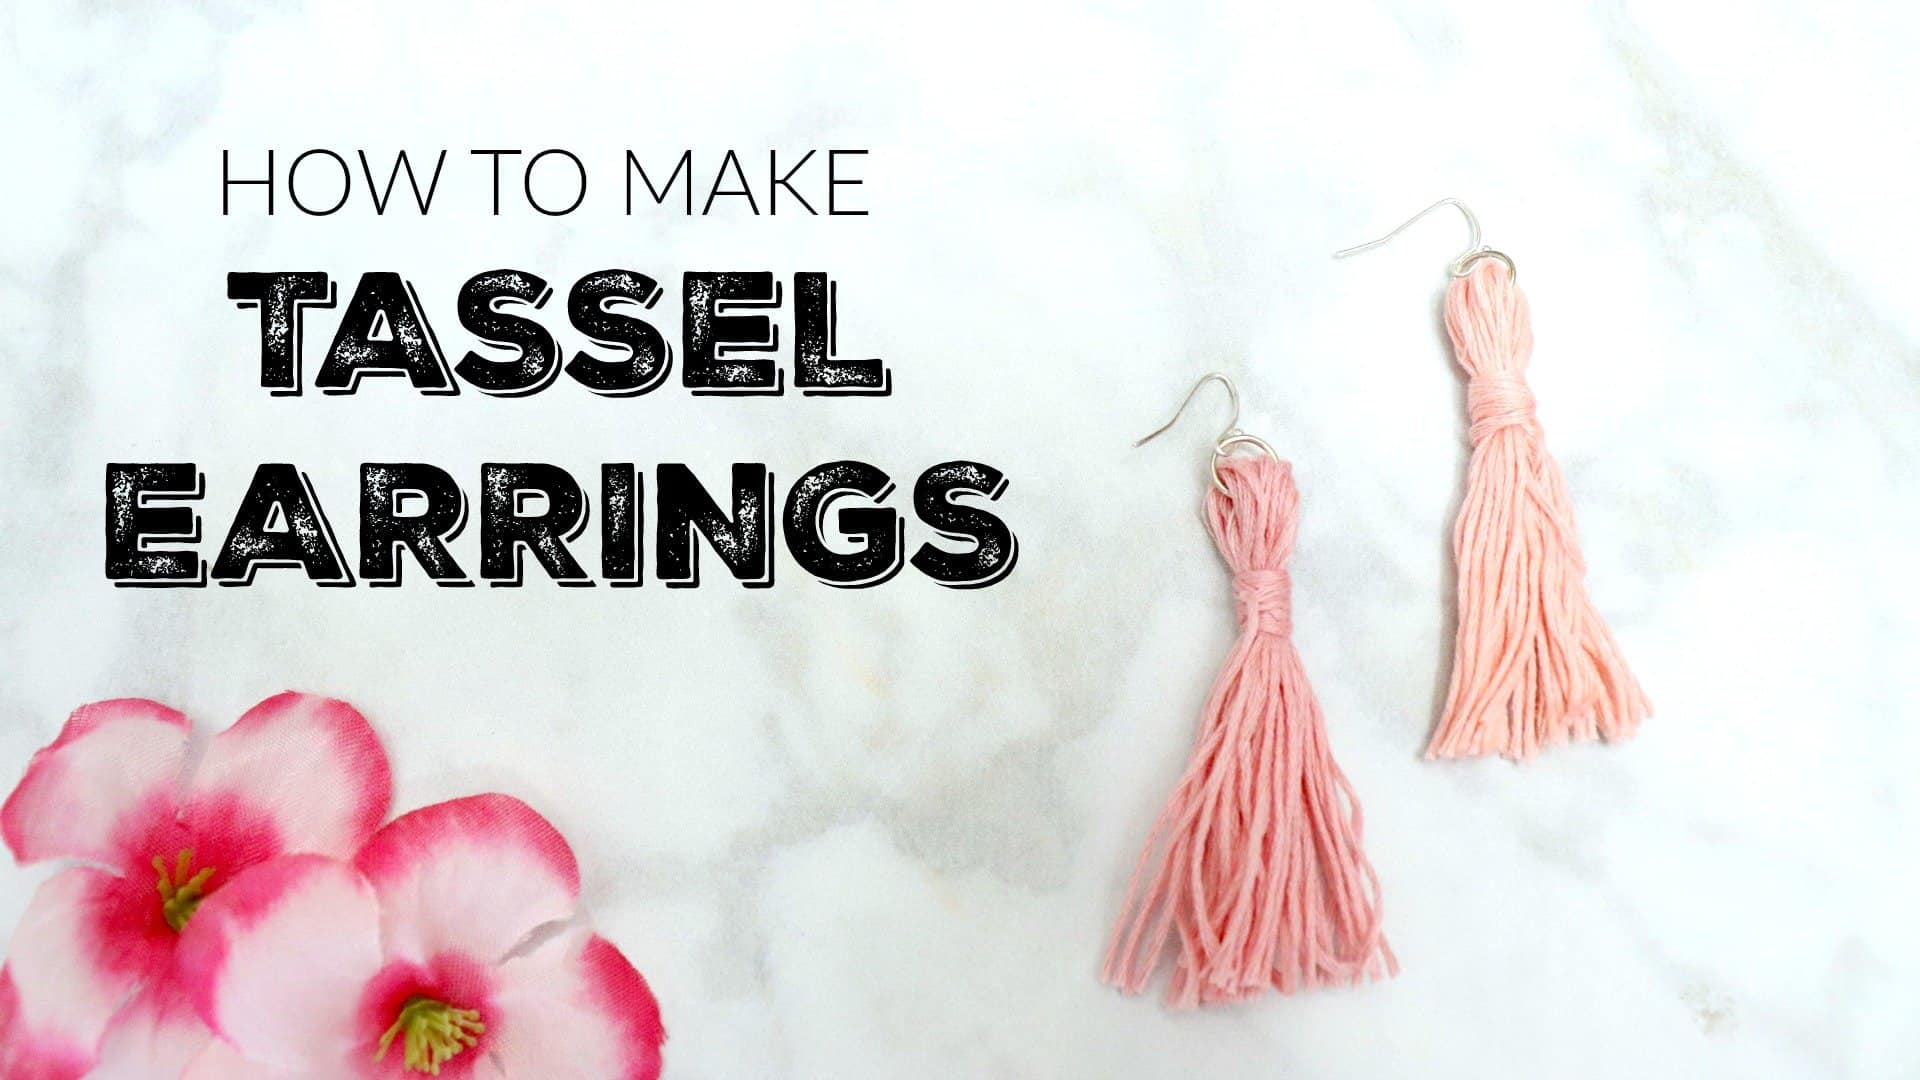 How to make tassel earrings video cover